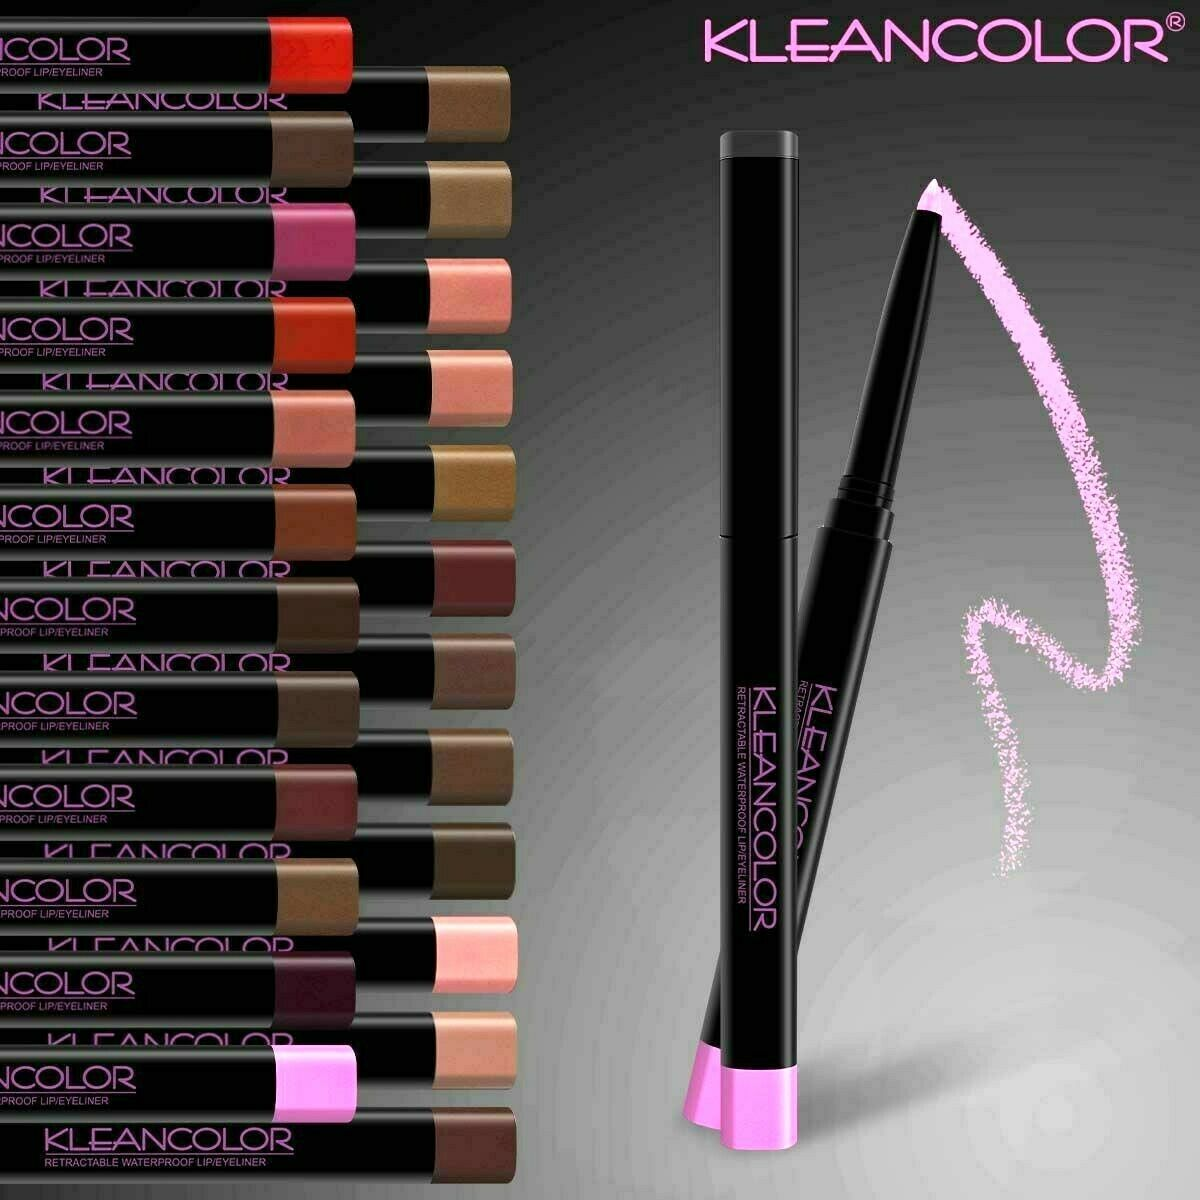 Kleancolor Retractable Lip Liner Waterproof Pick From 26 Col